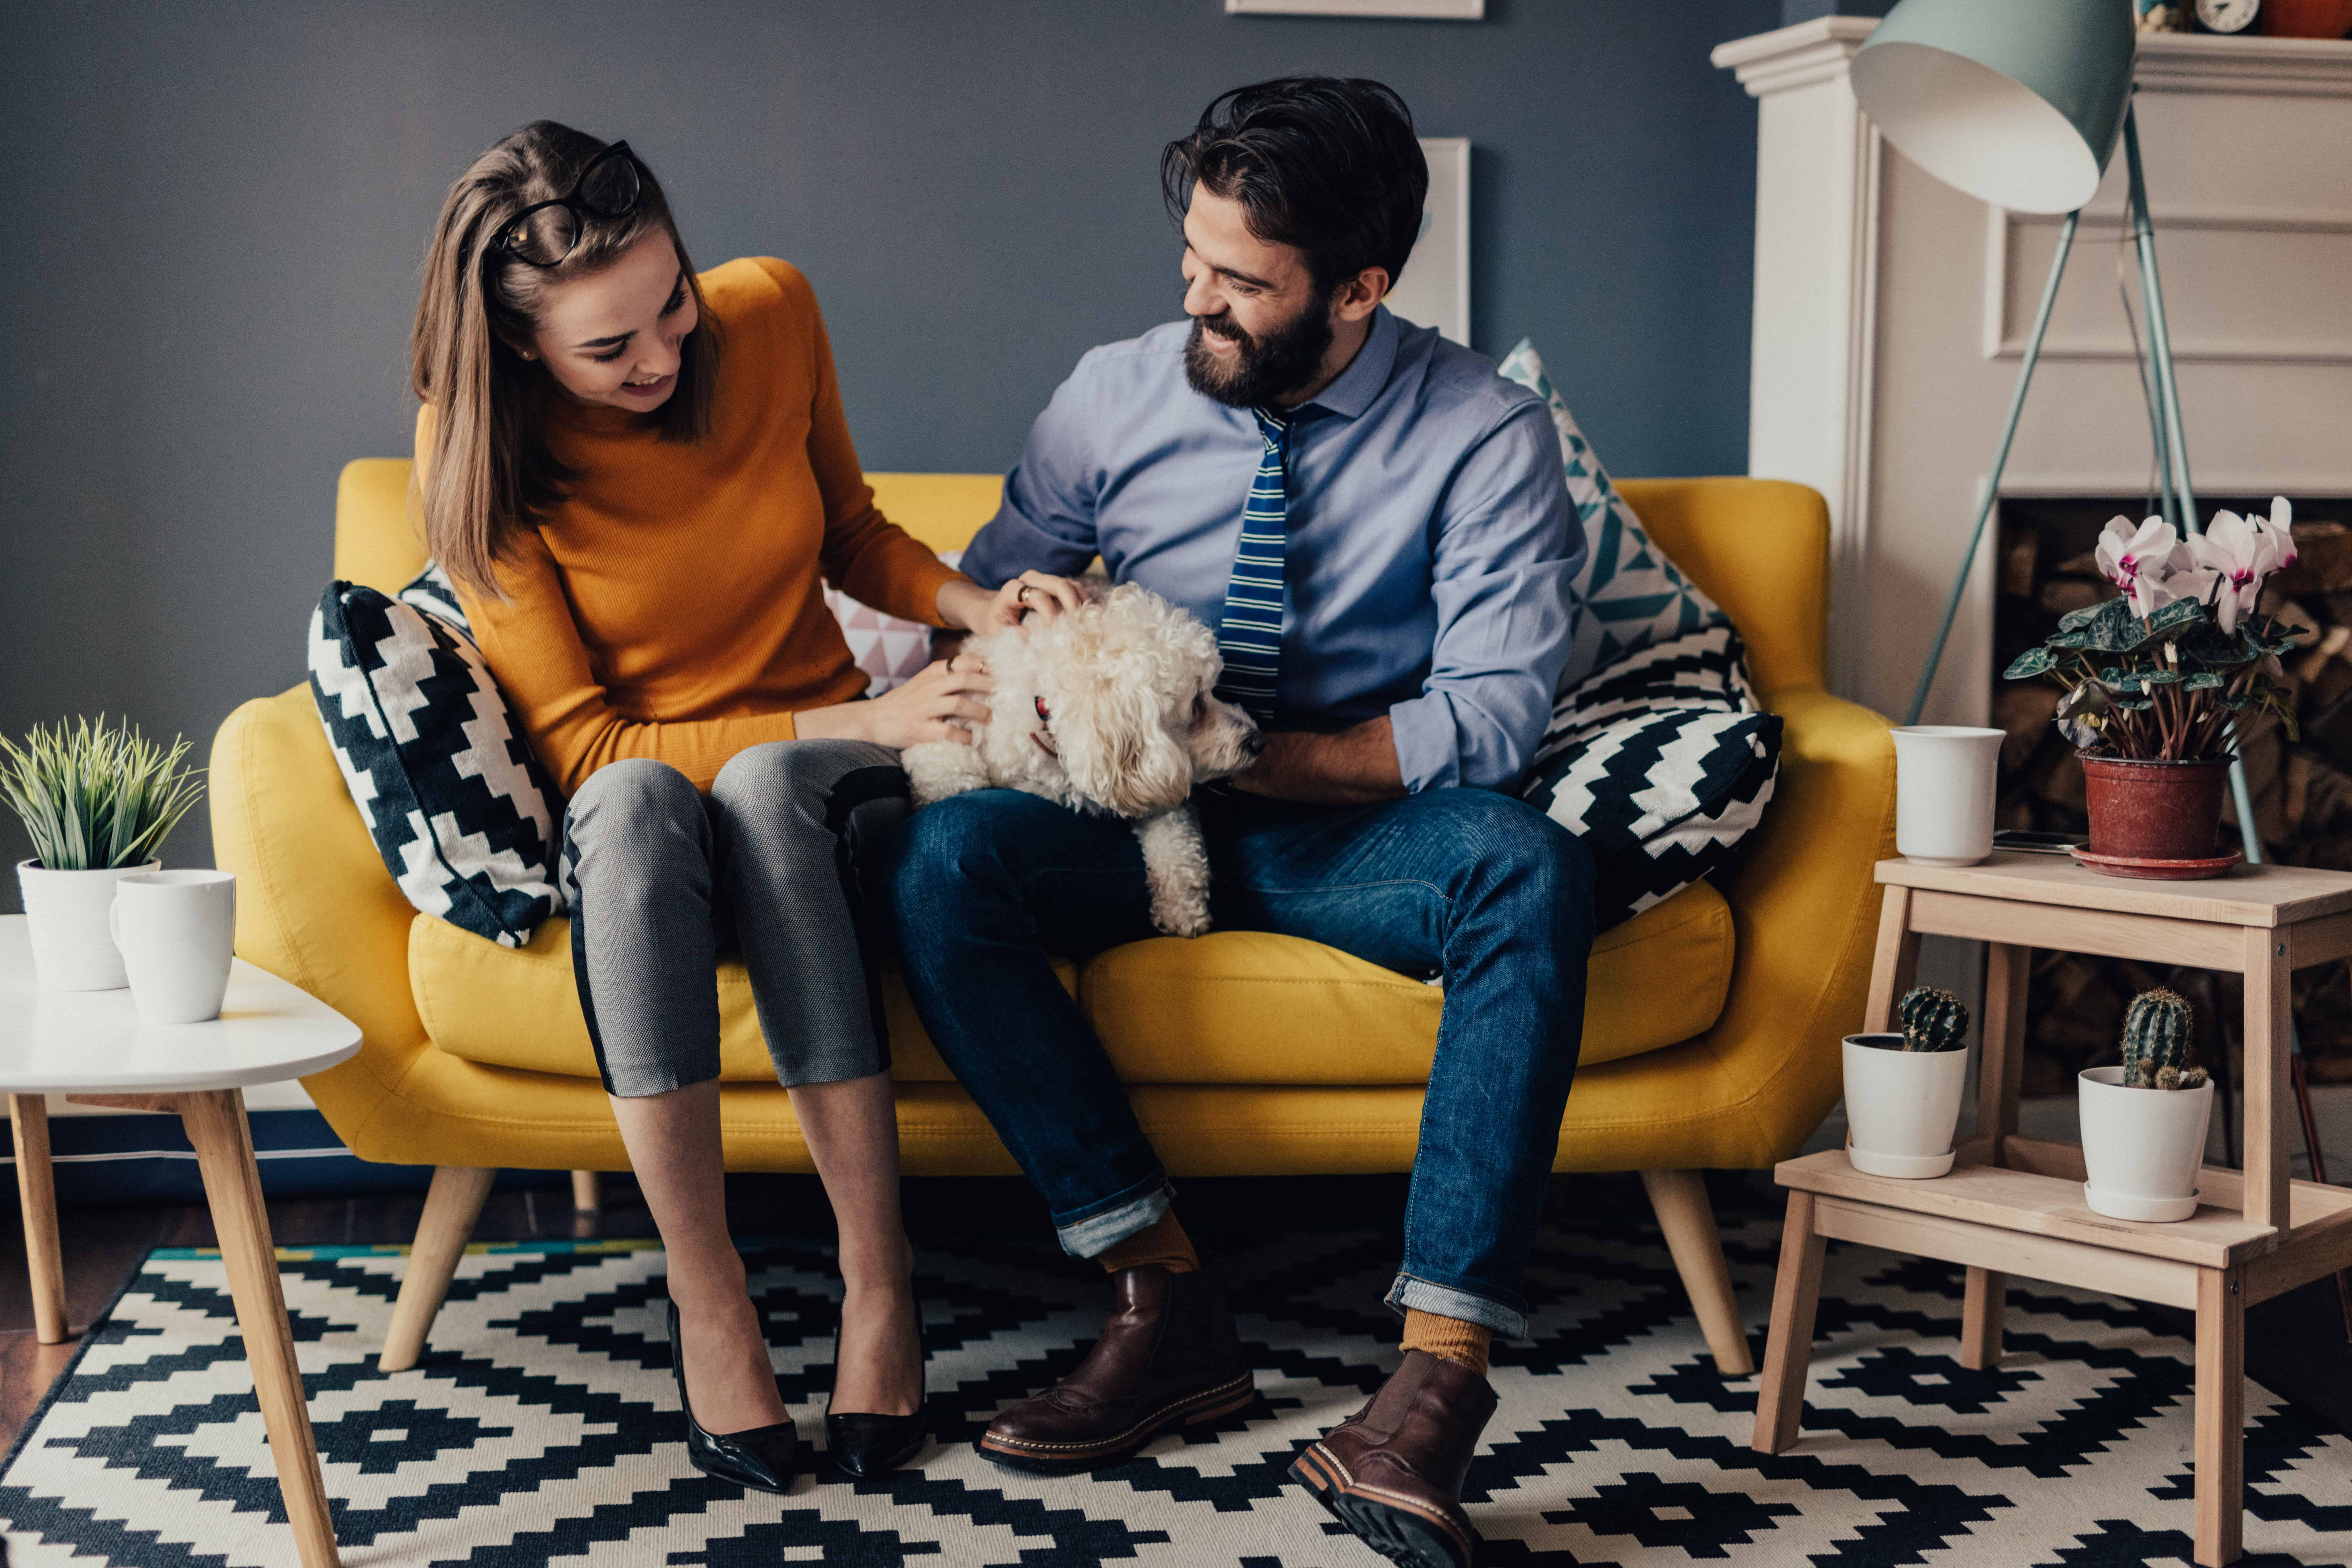 A couple sitting on a couch petting their puppy